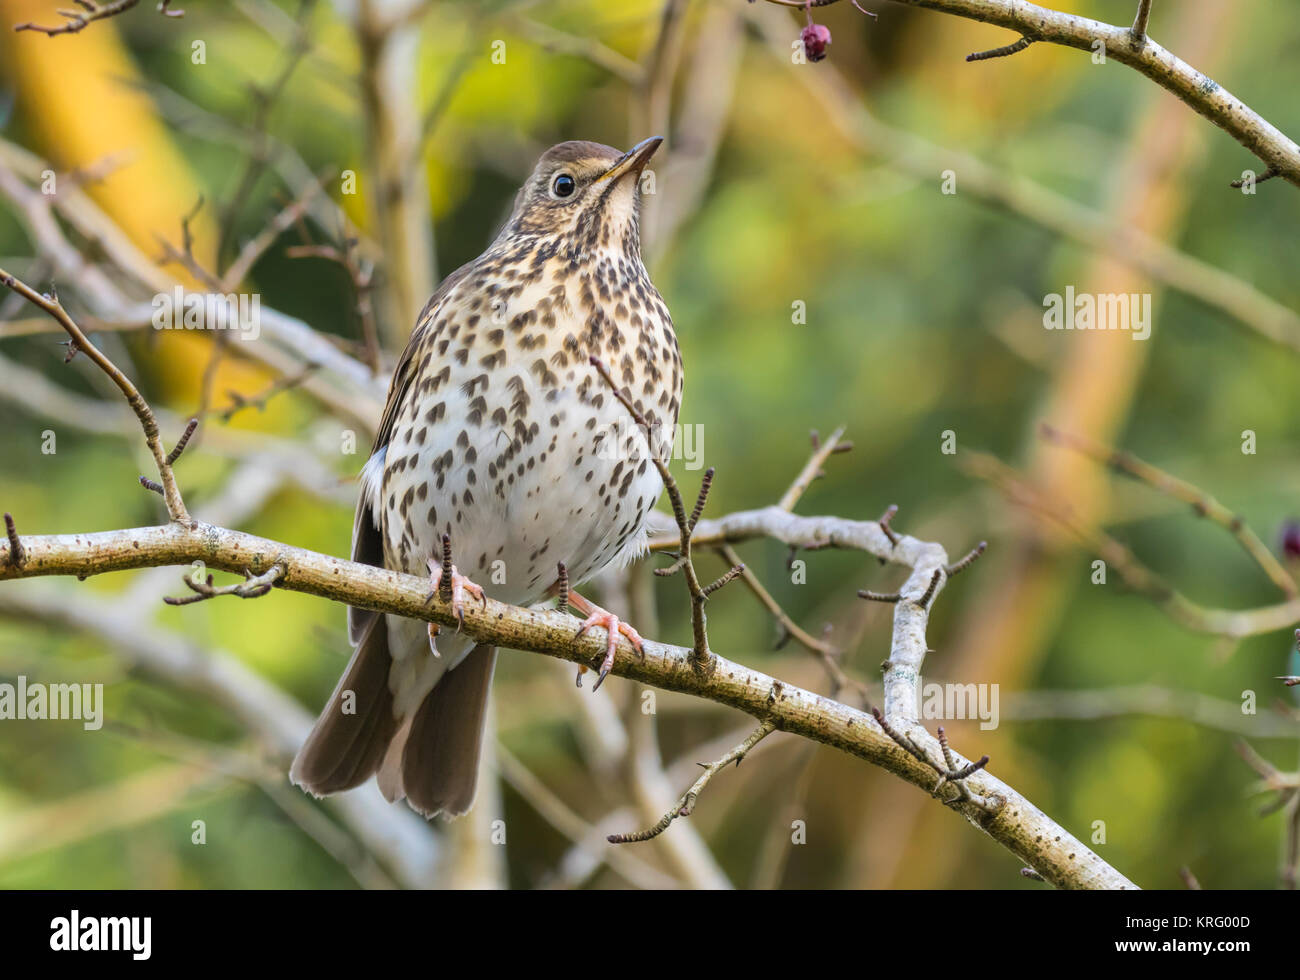 Song Thrush (Turdus philomelos) perched on a twig in Winter in West Sussex, England, UK. - Stock Image